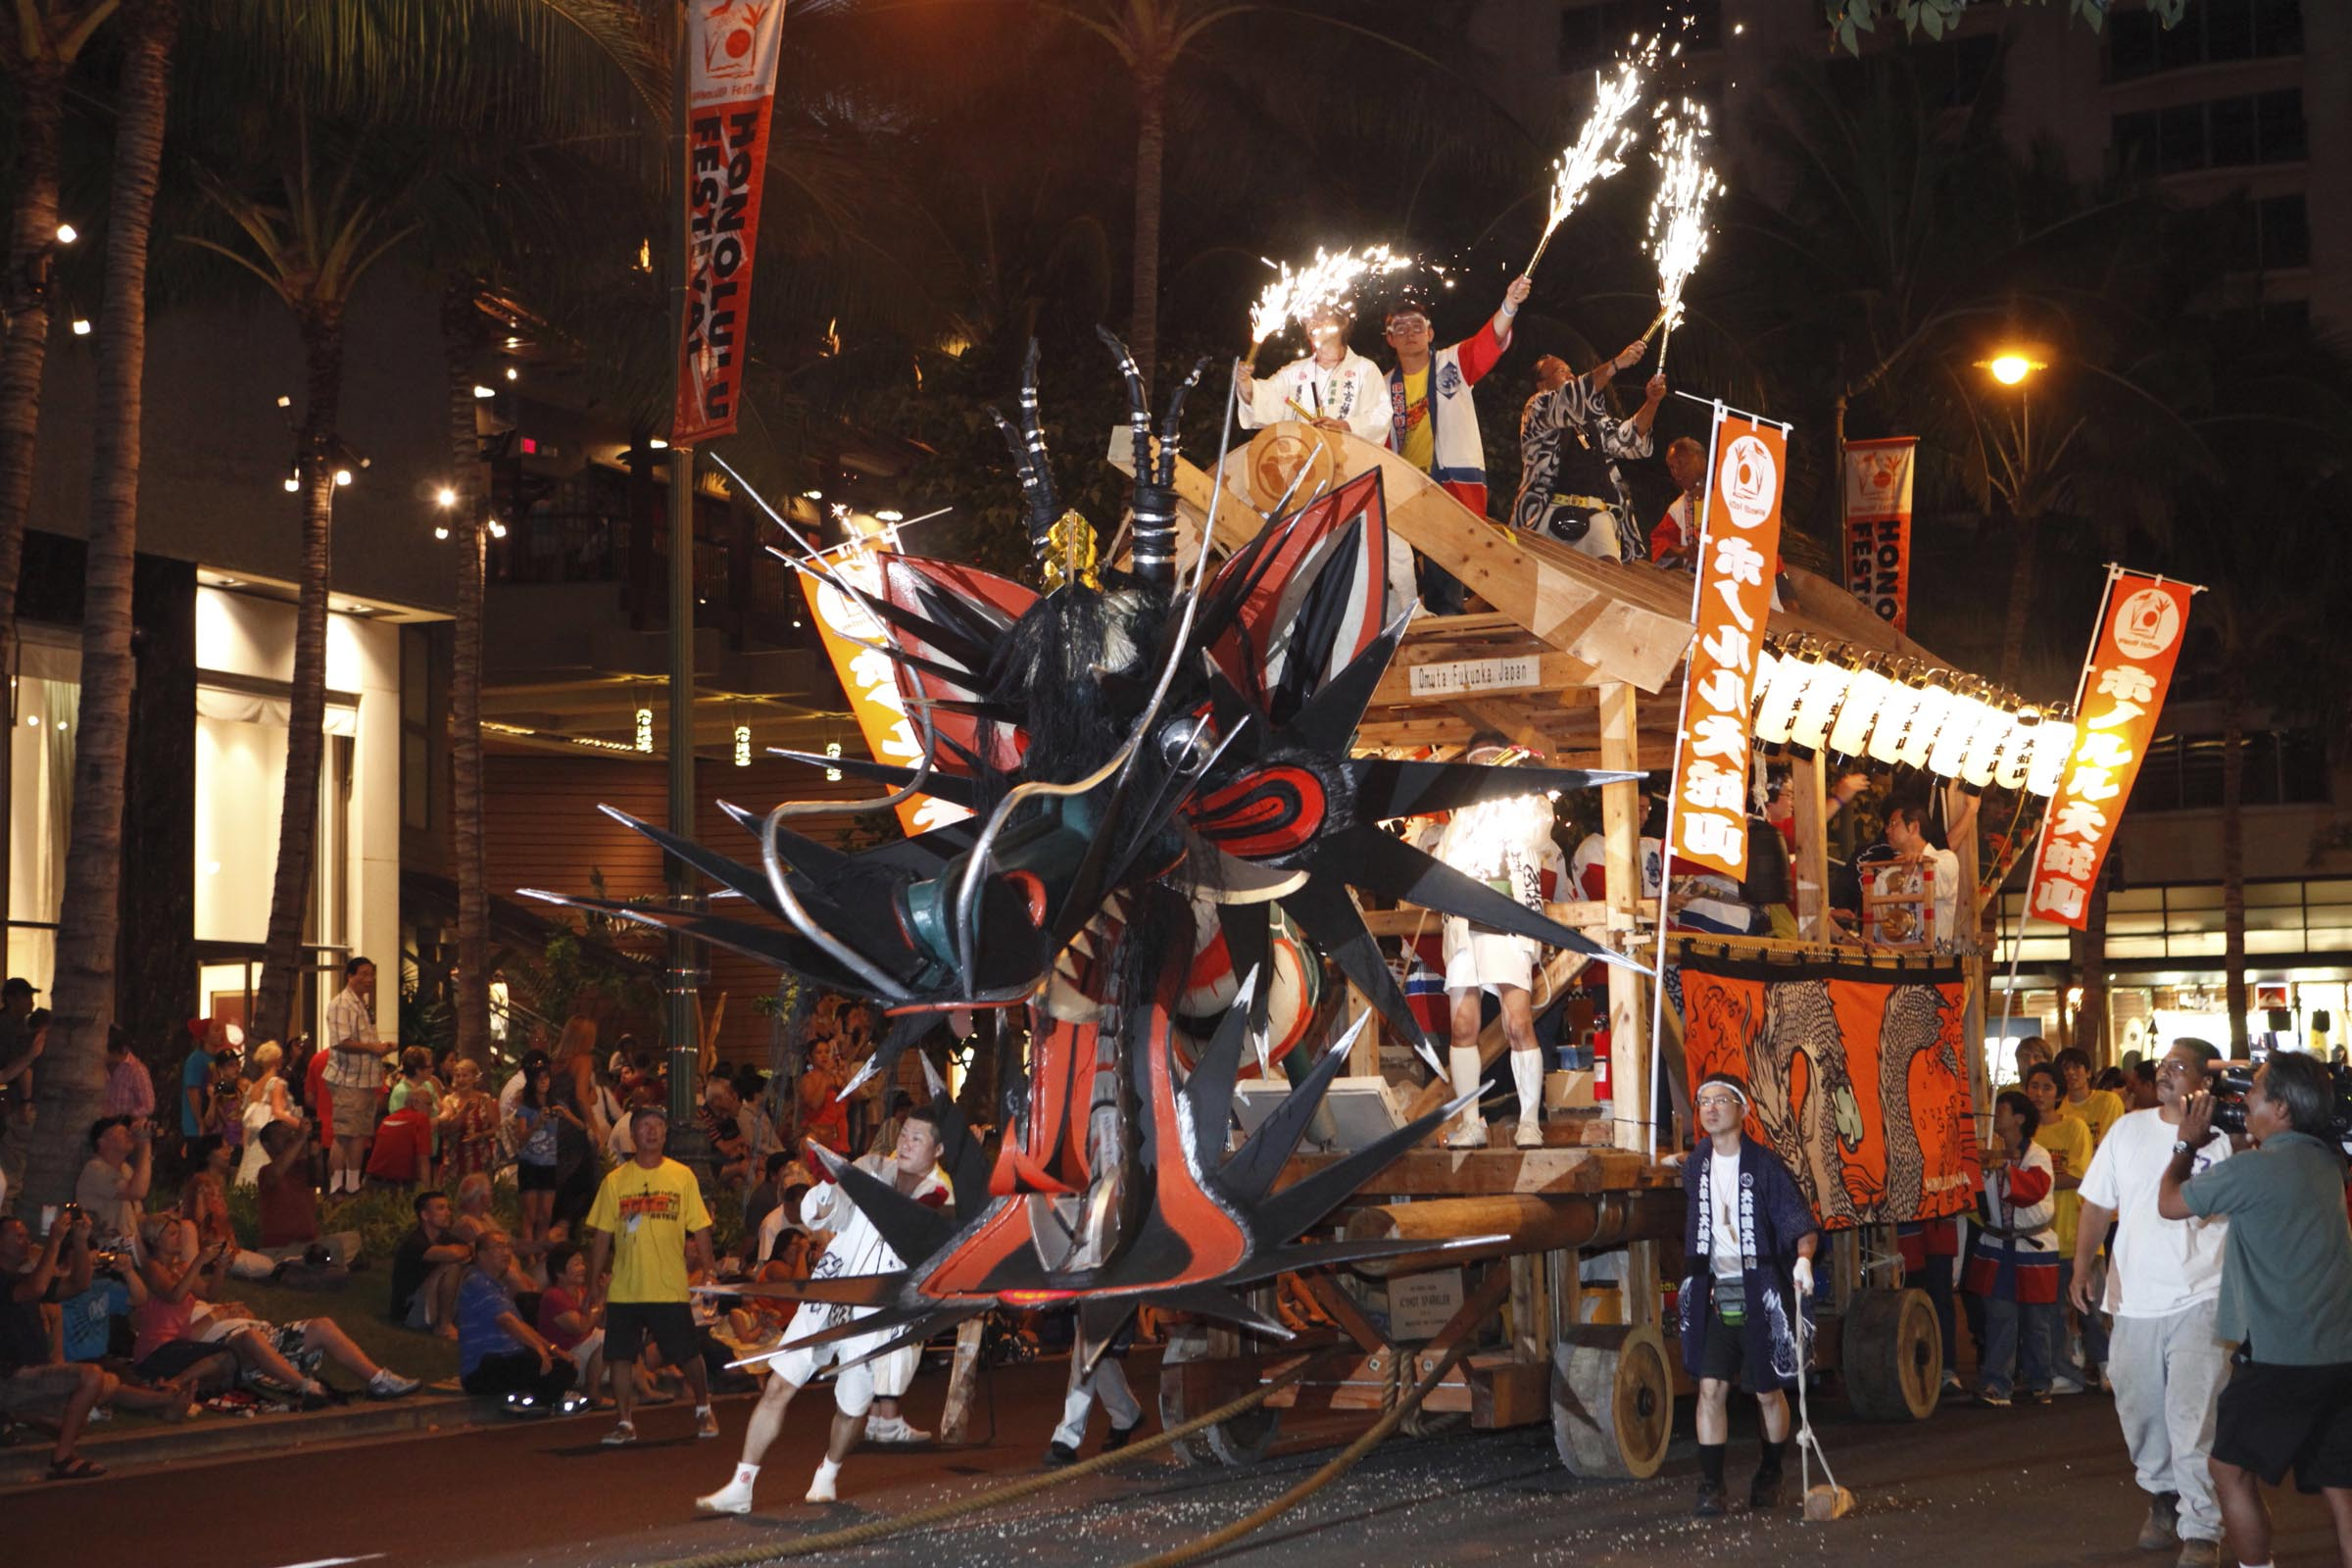 Fire-breathing Daijayama dragon in the Waikiki Grand Parade. (Credit: Honolulu Festival)